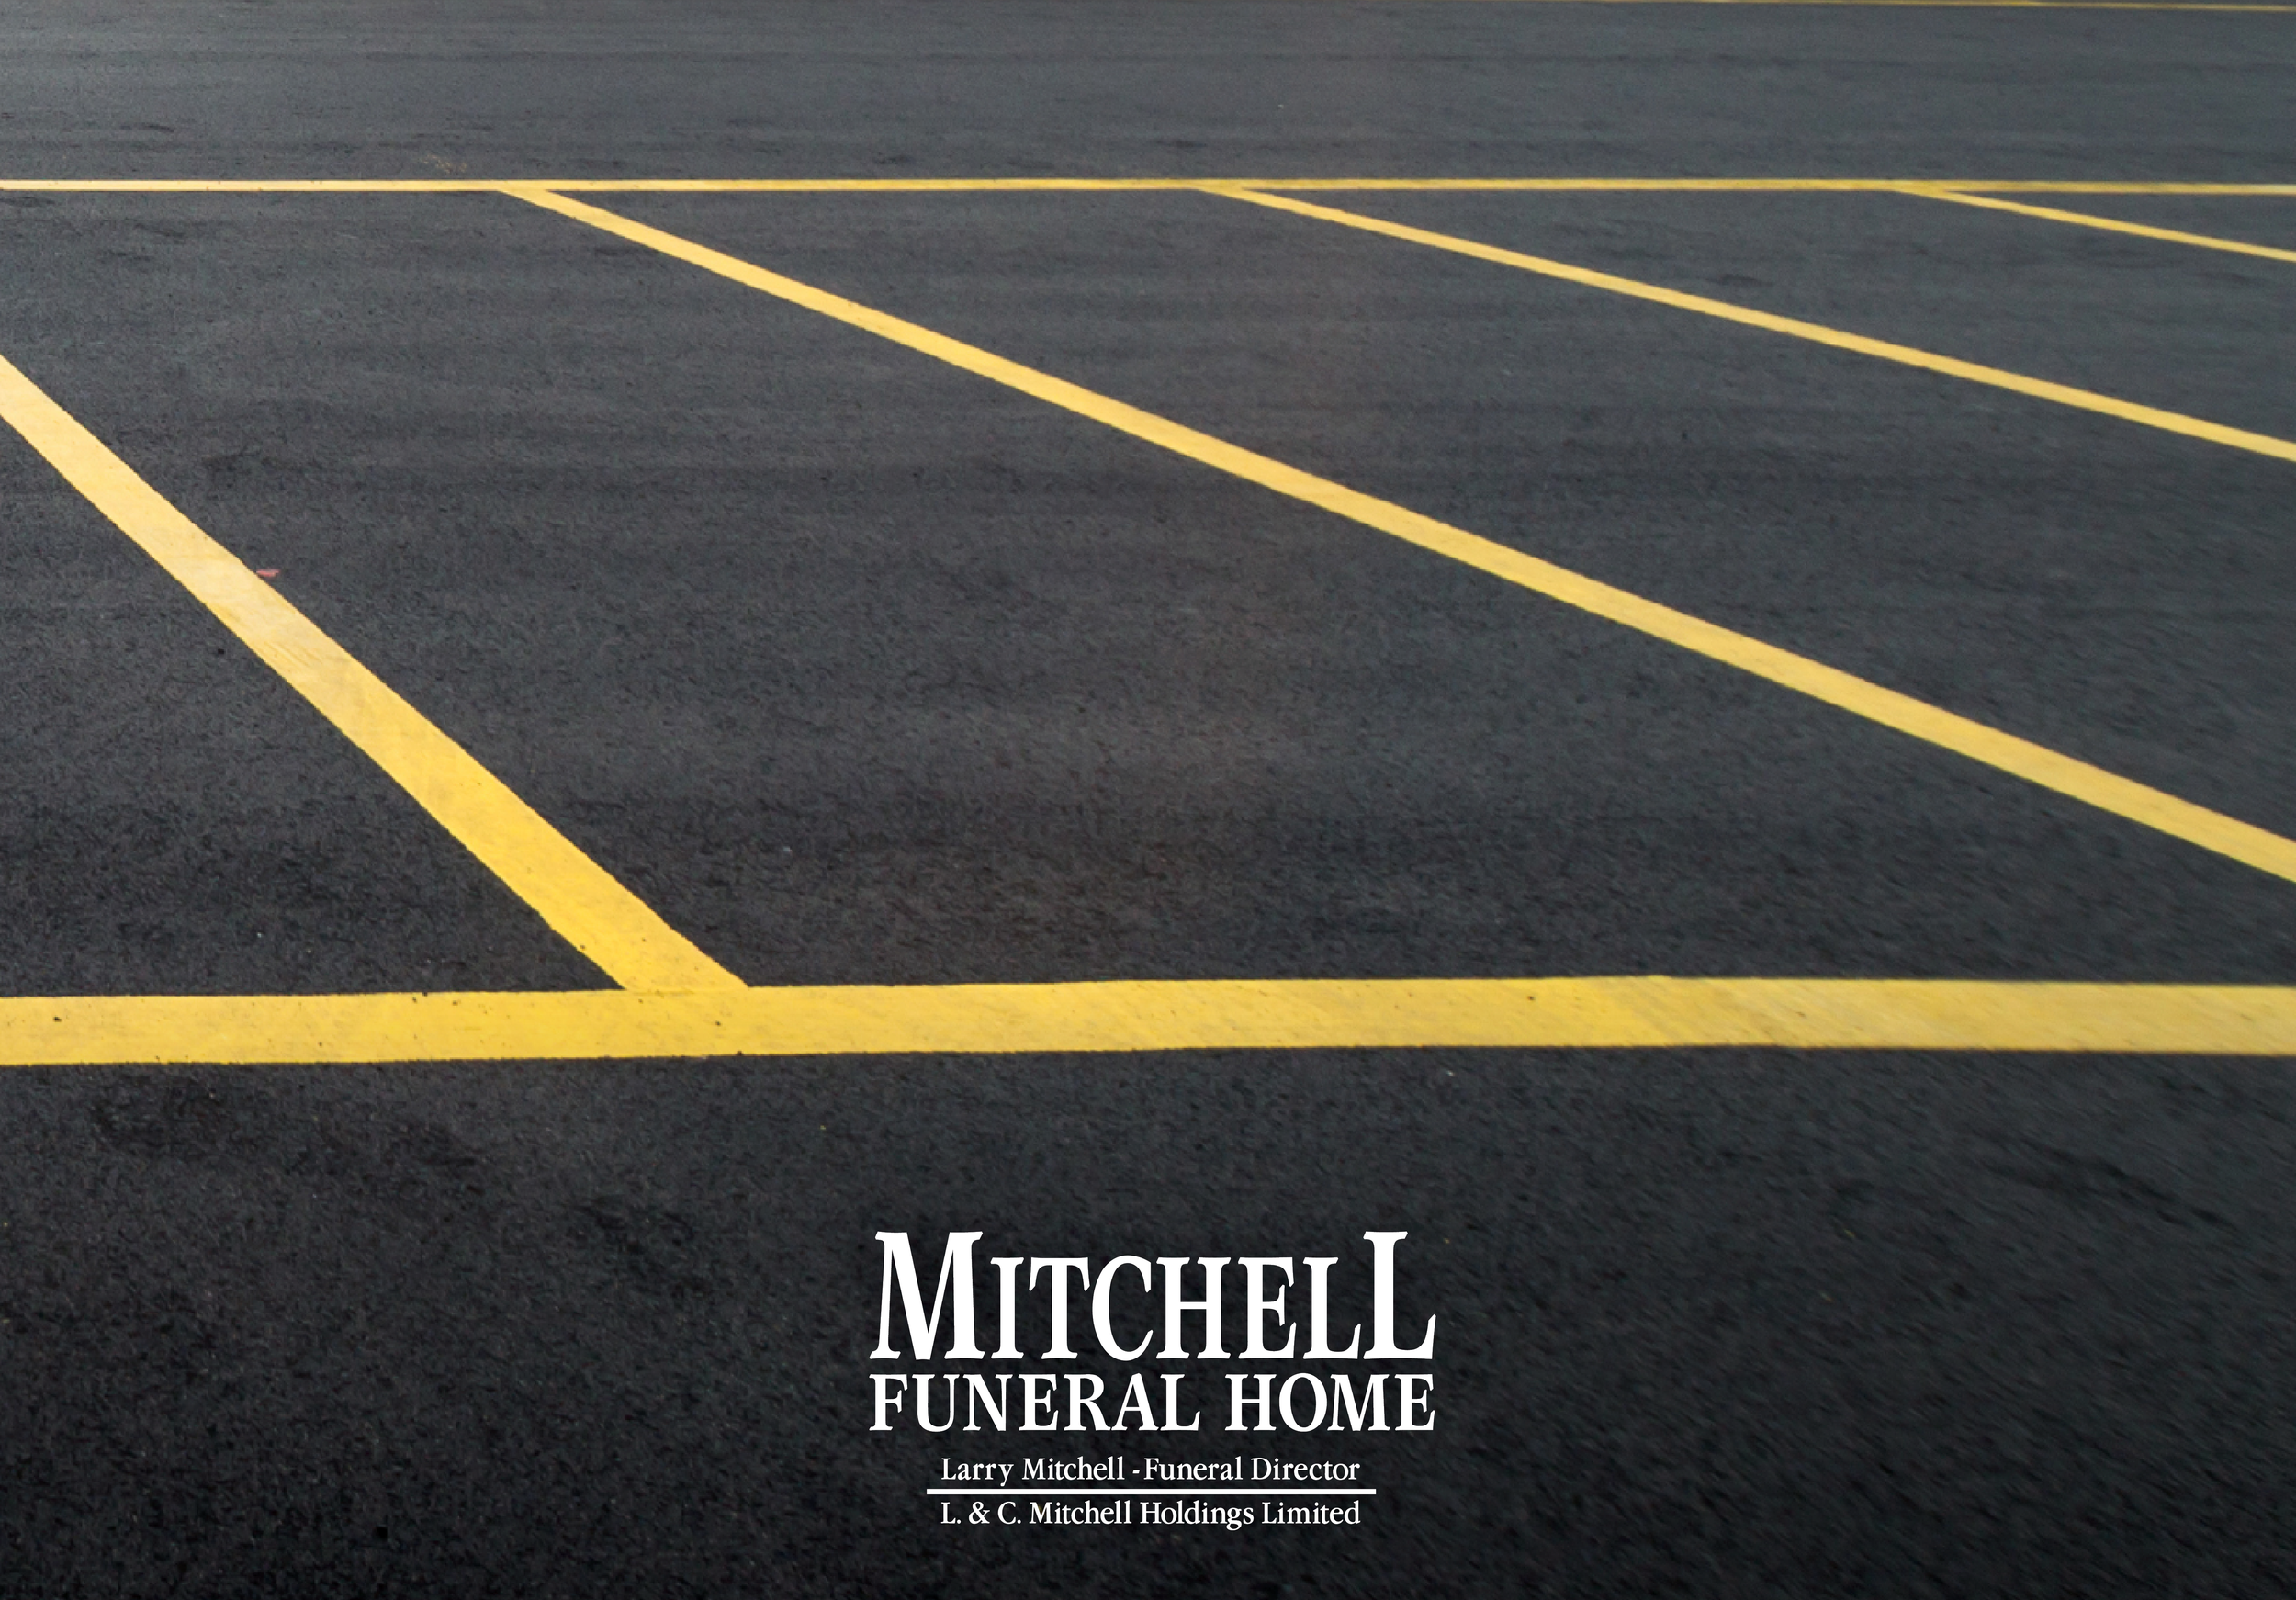 Private Parking - At Mitchell Funeral Home, our goal is to create a sense of home and ensure our guests feel welcome, comfortable and at ease from the moment they arrive. Many may not realize that just behind the funeral home we have on-site, private parking.